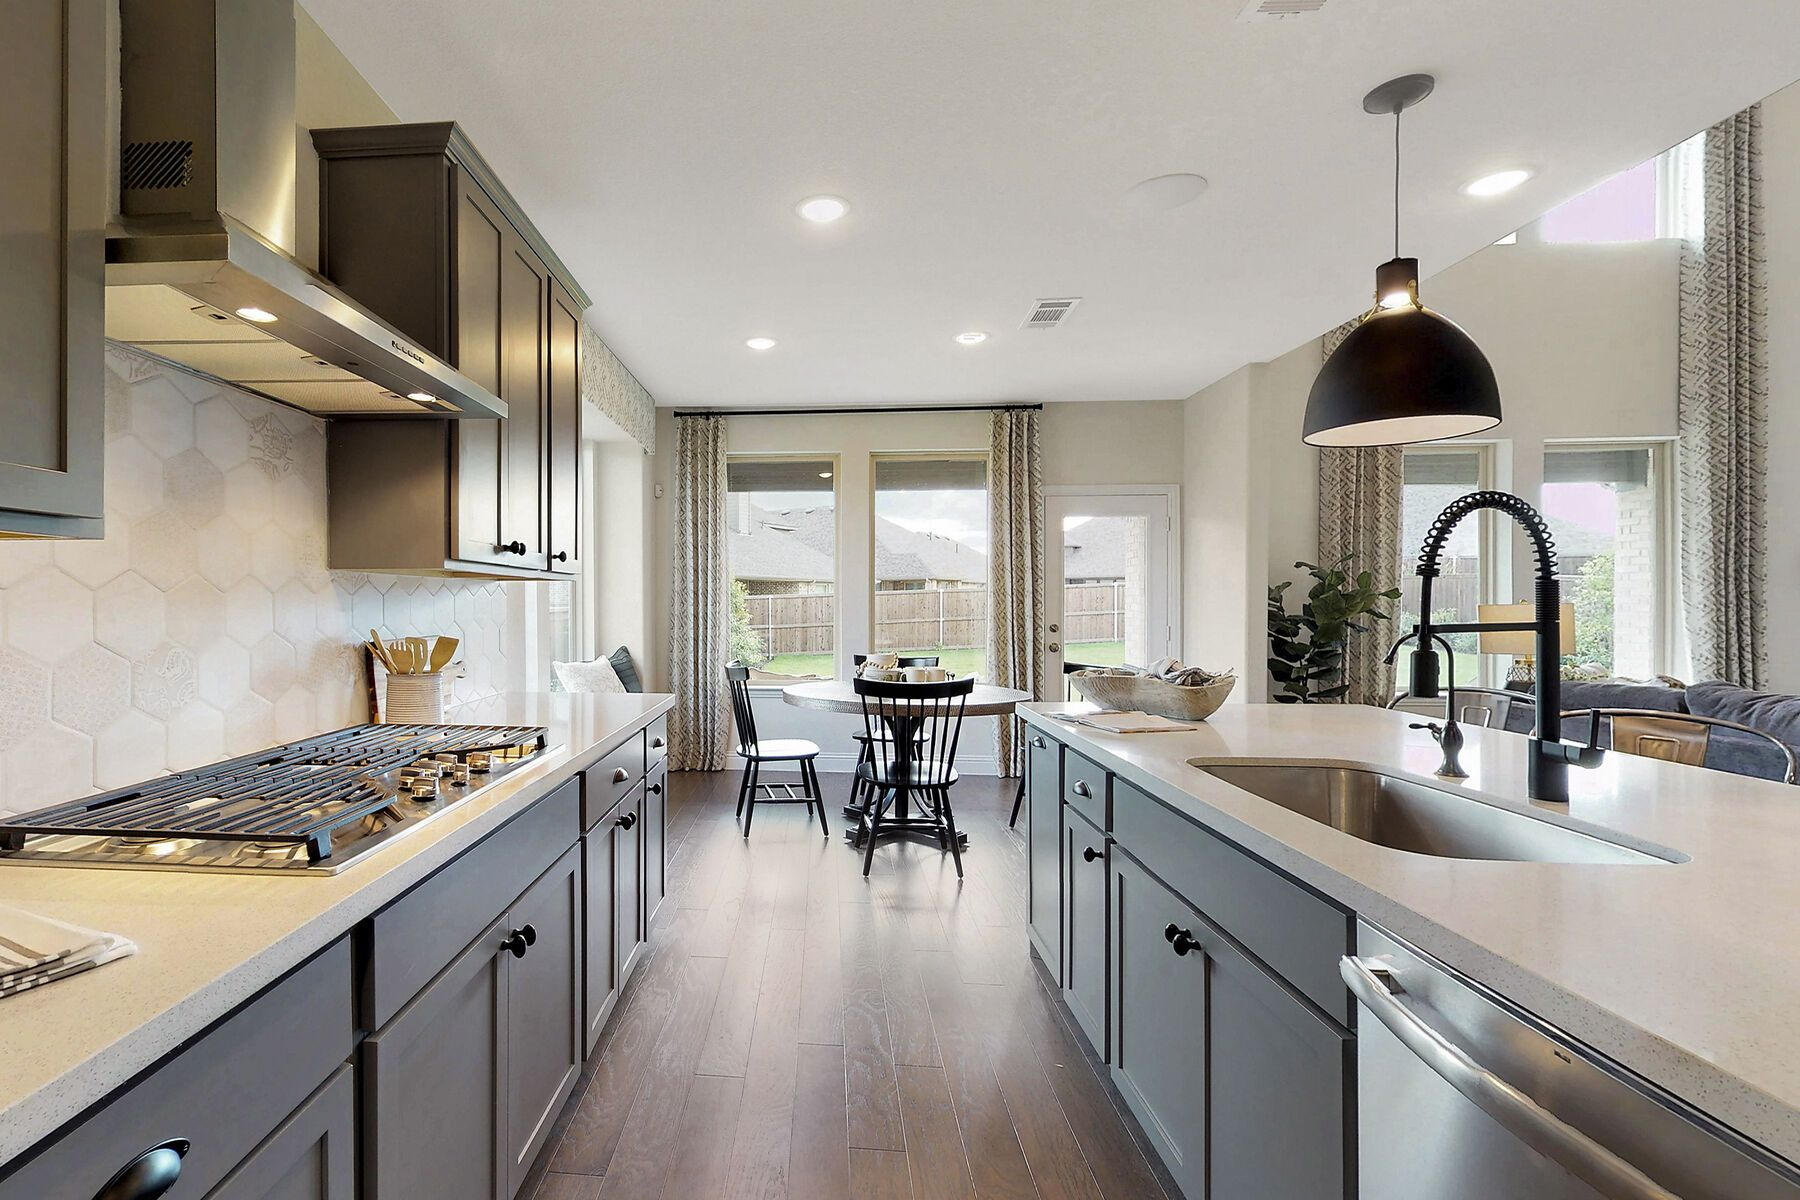 Kitchen featured in the Zacate By M/I Homes in Fort Worth, TX